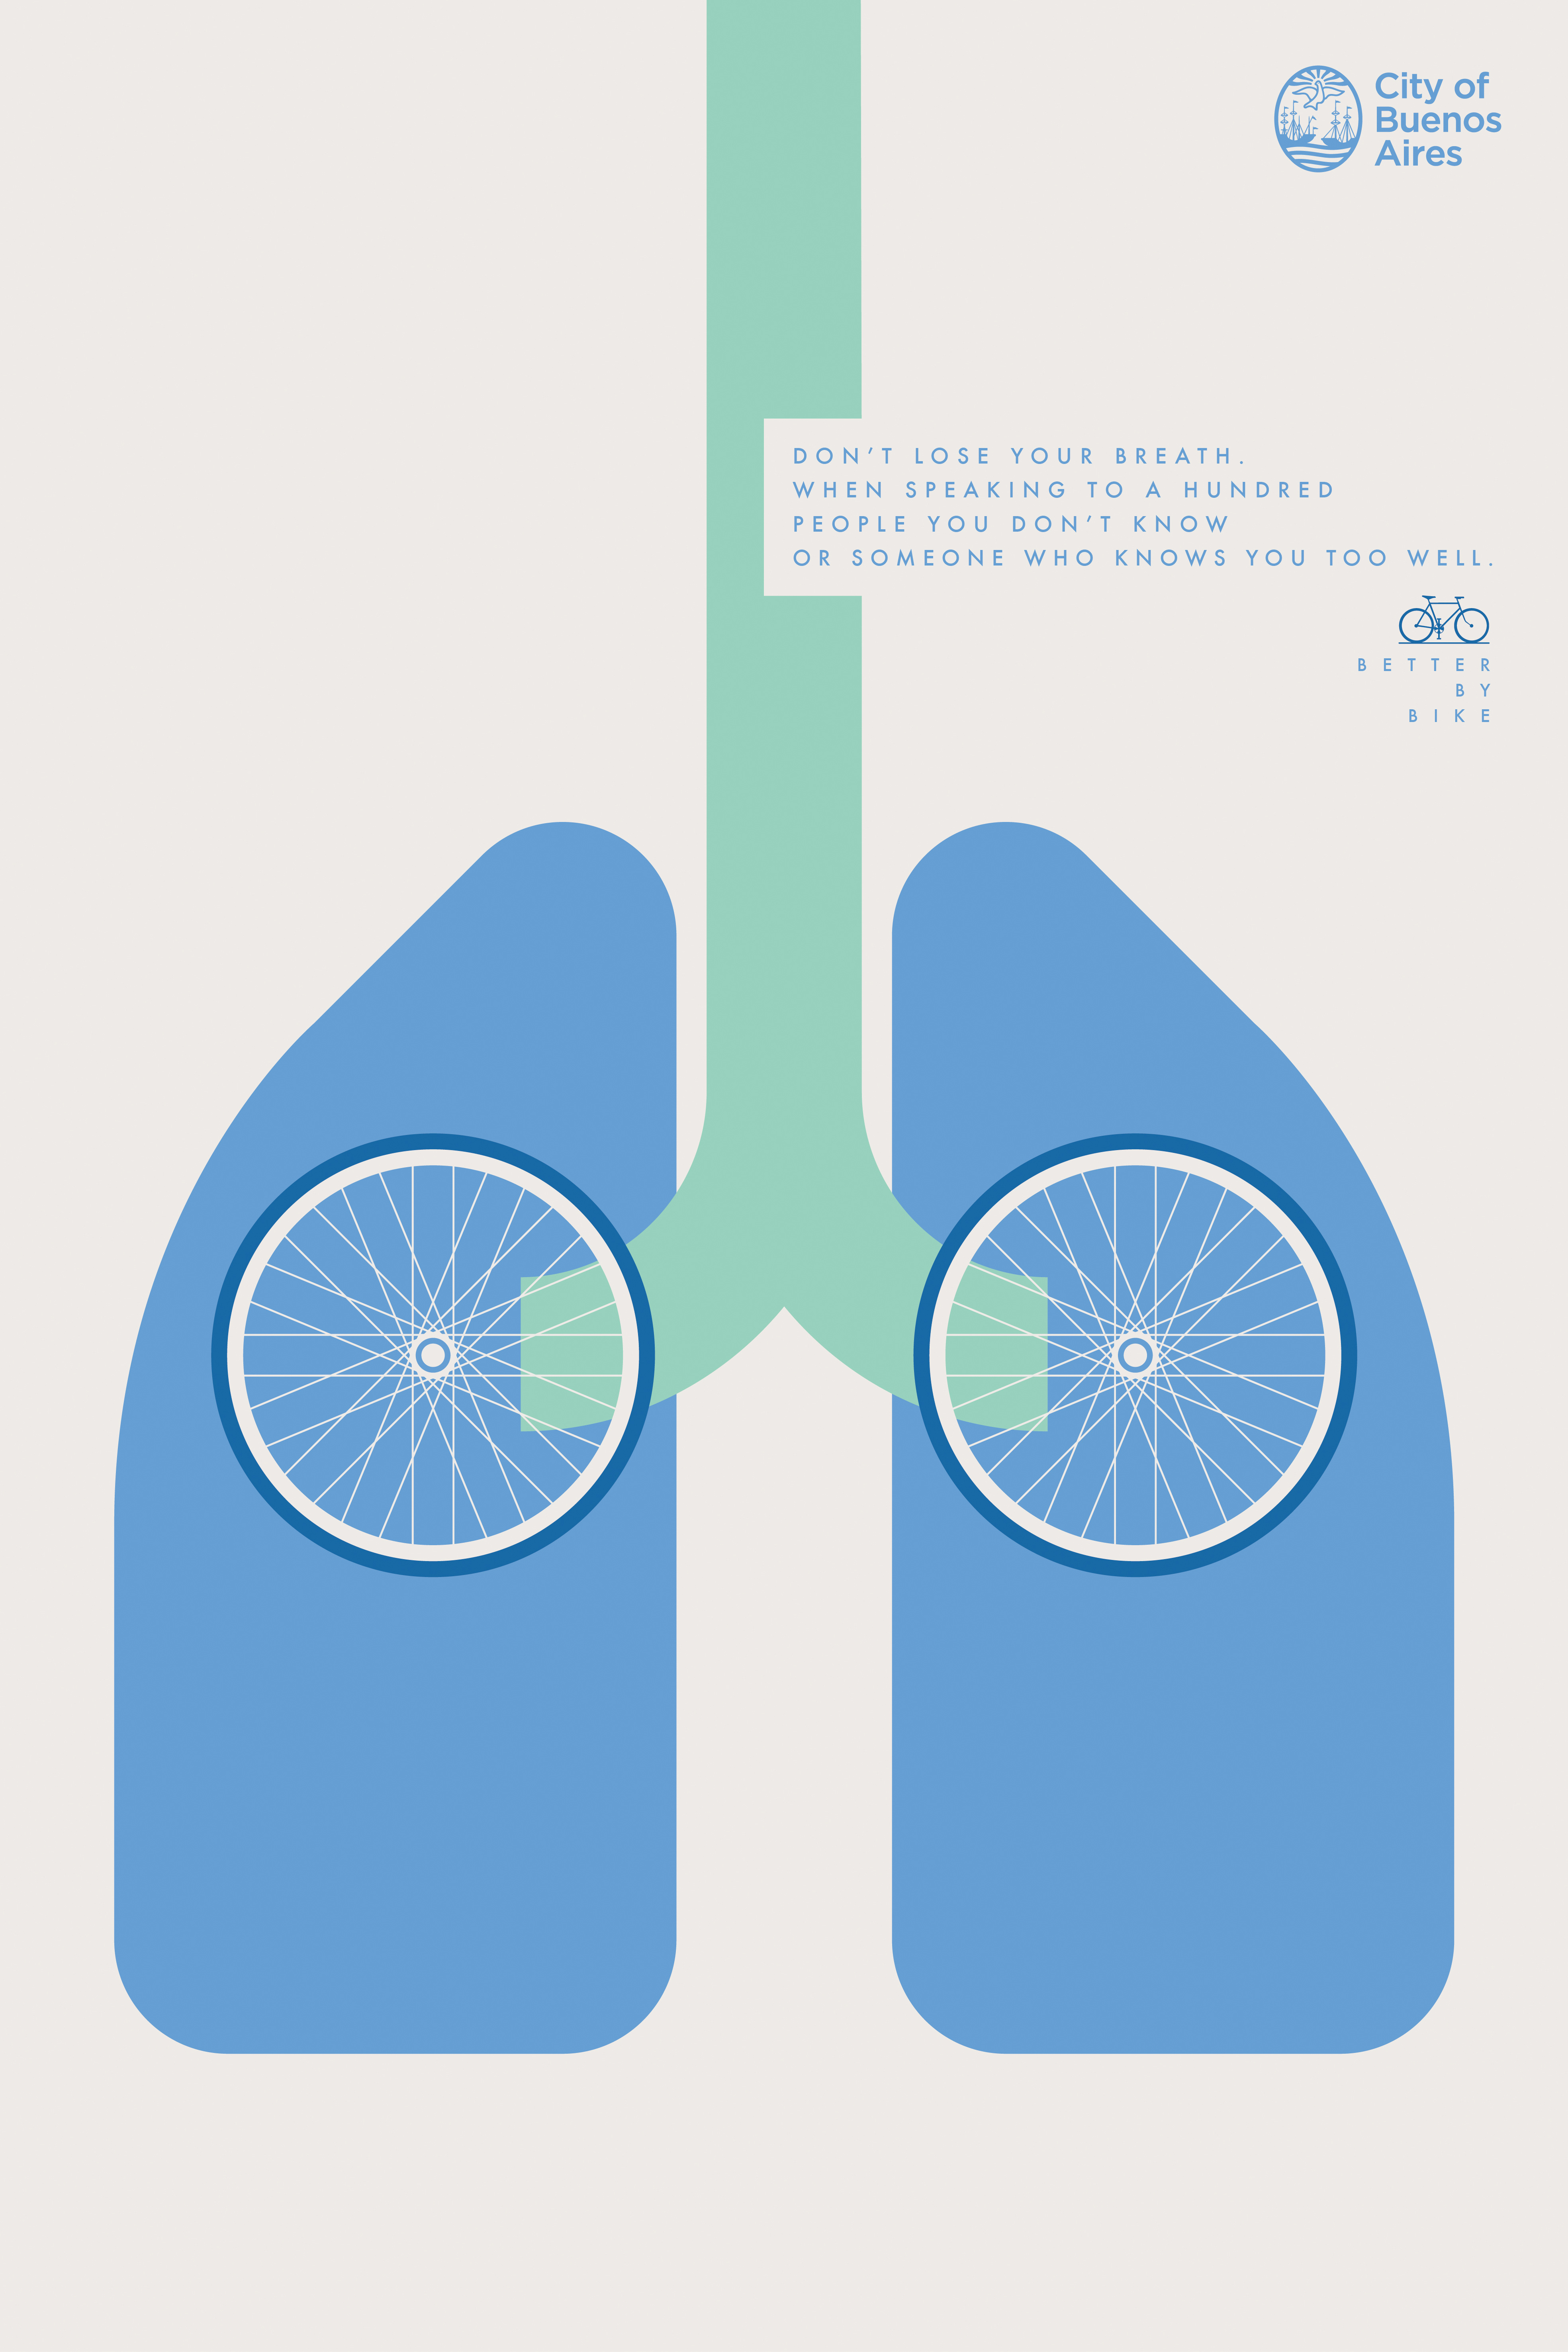 BICI_Lungs